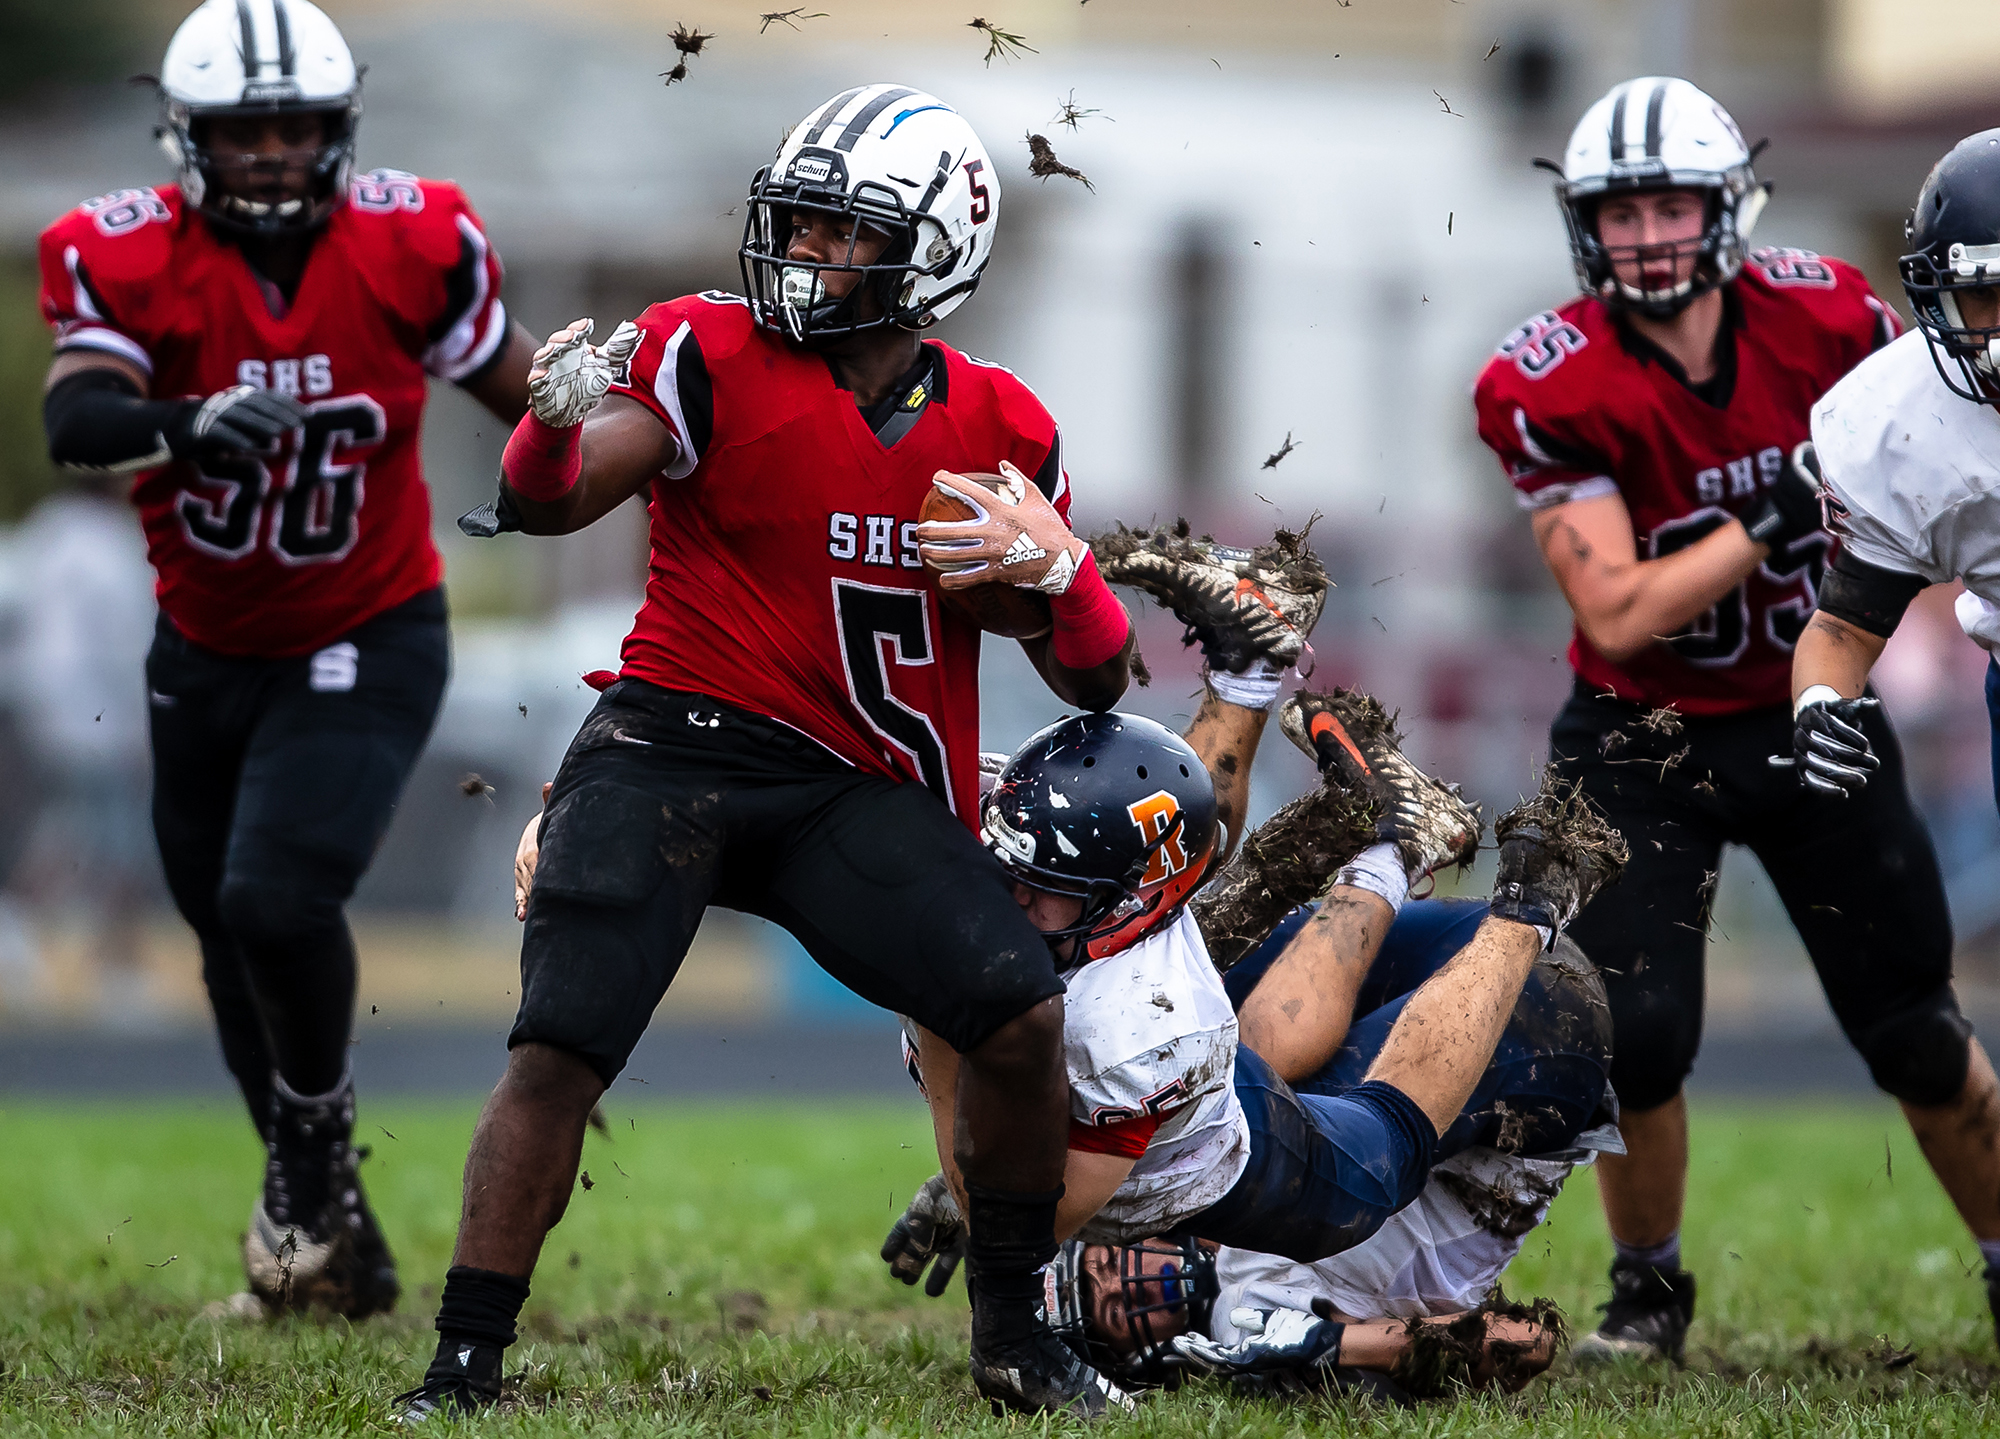 Rochester's Mitchell Morris (65) brings Springfield's Justin Bivins II (5) down by his jersey on a rush in the first half at Memorial Stadium, Saturday, Oct. 6, 2018, in Springfield, Ill. [Justin L. Fowler/The State Journal-Register]